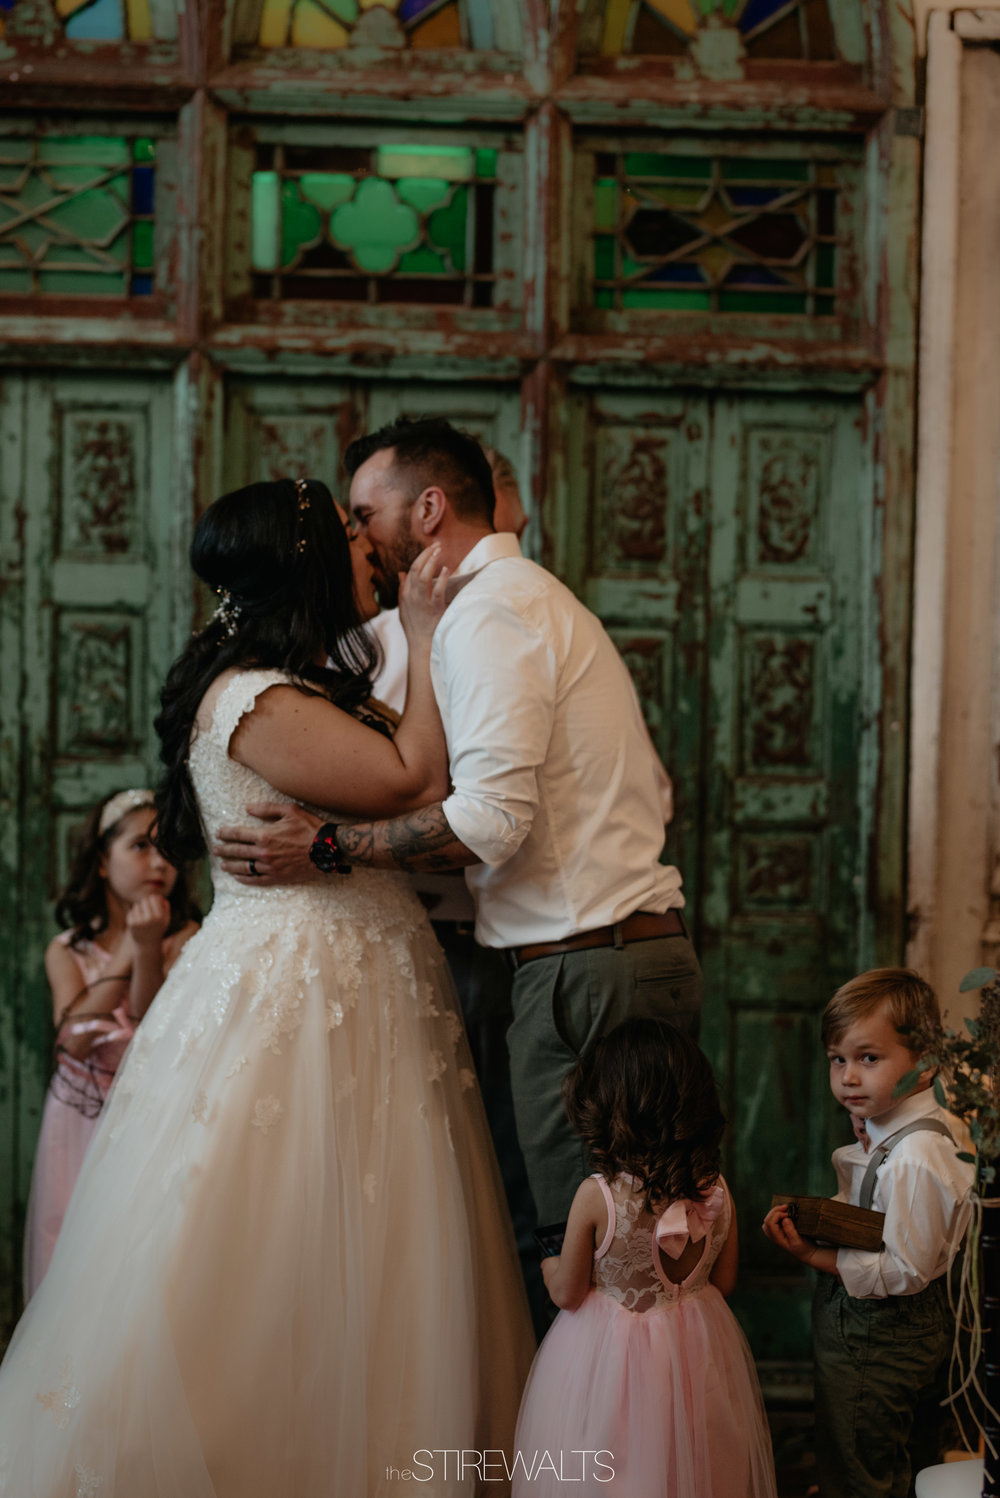 Sara.Jon.Wedding.Blog.2018.©TheStirewalts-63.jpg